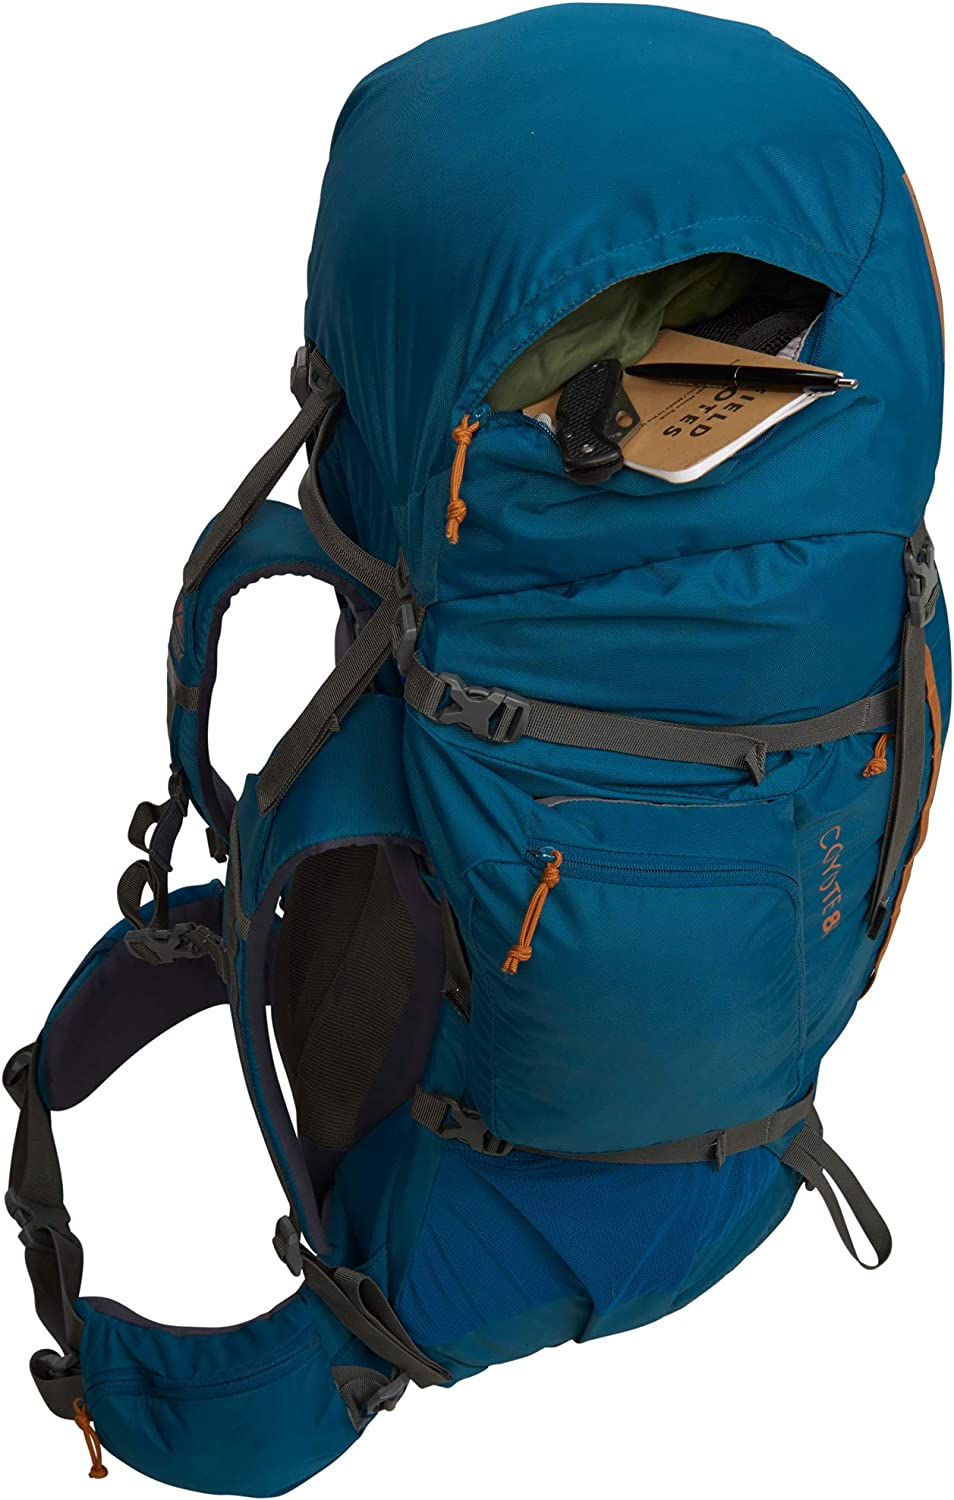 2020 Update Kelty Coyote 60-105 Liter Backpack - Hiking Travel Backpack Mens and Womens Backpacking